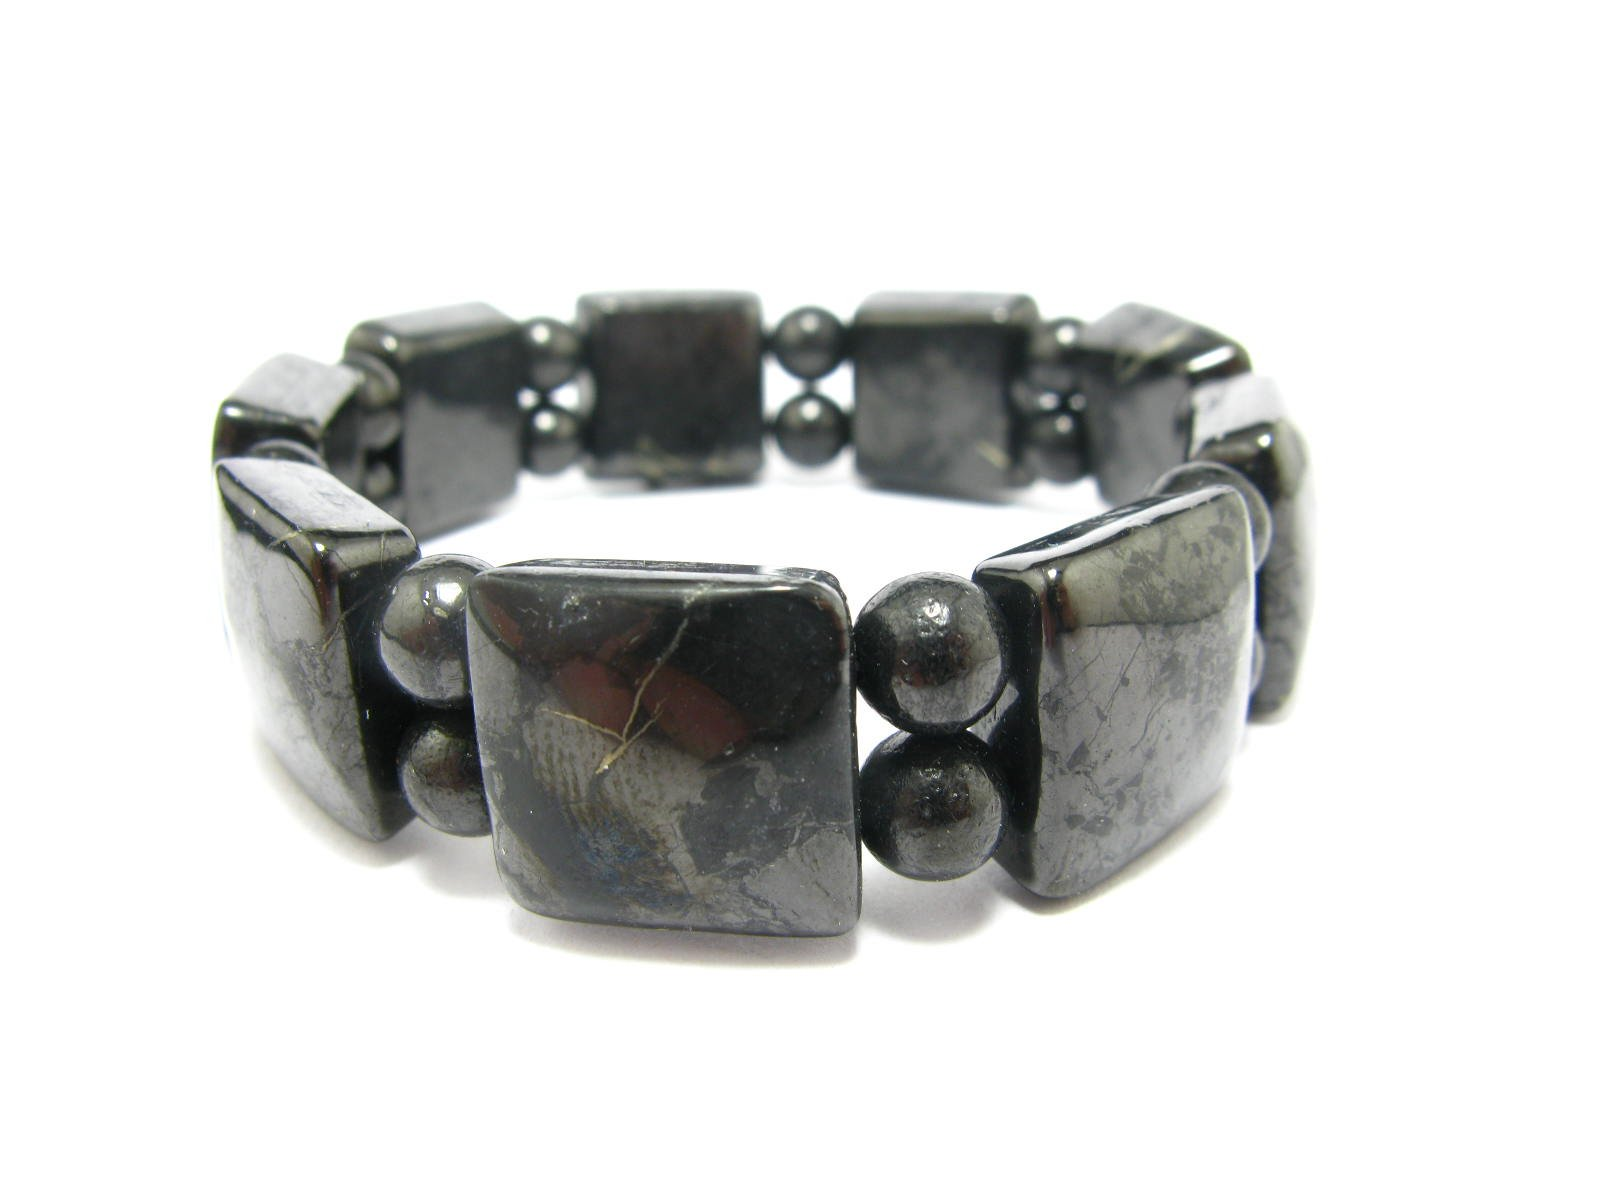 Shungite Bracelet From Russia - Squared + Round Beads